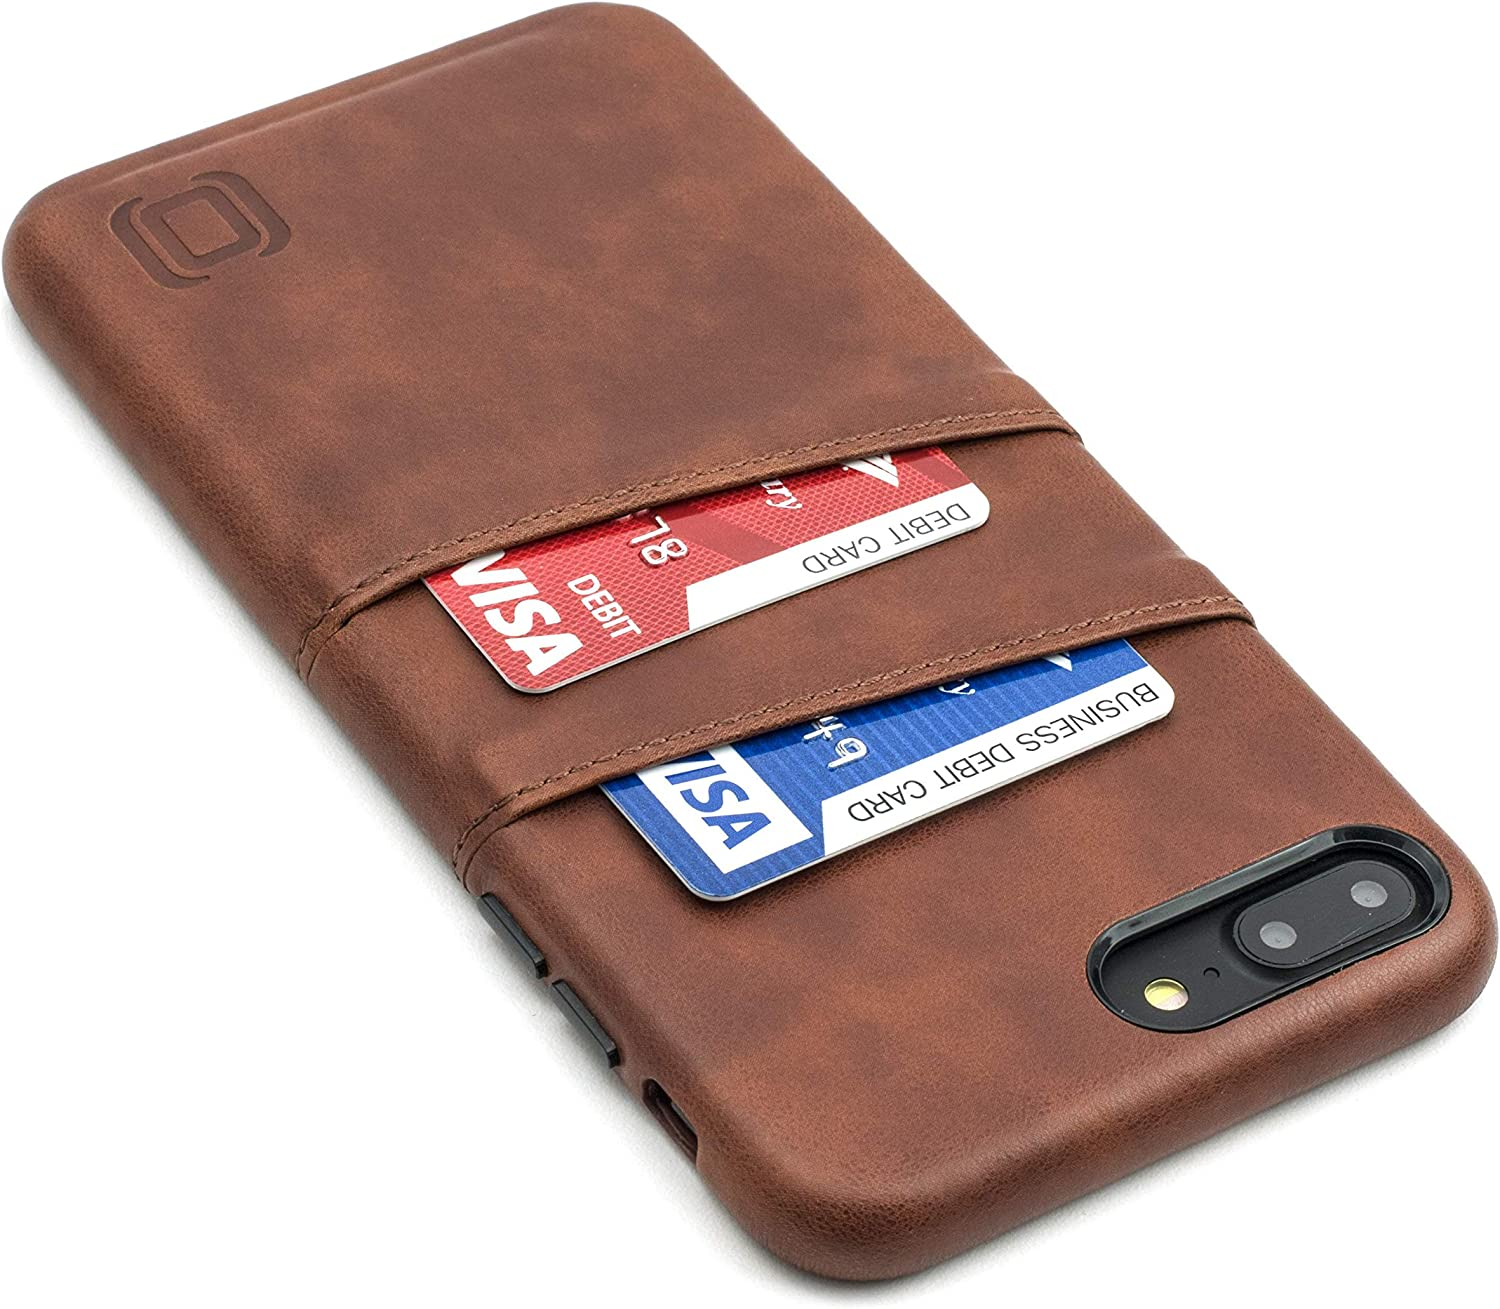 Dockem Exec Wallet Case for iPhone 8 Plus / 7 Plus; Slim Vintage Synthetic Leather Card Case with 2 Card/ID Holder Slots: Simple, Professional, Executive Snap On Cover [Brown]